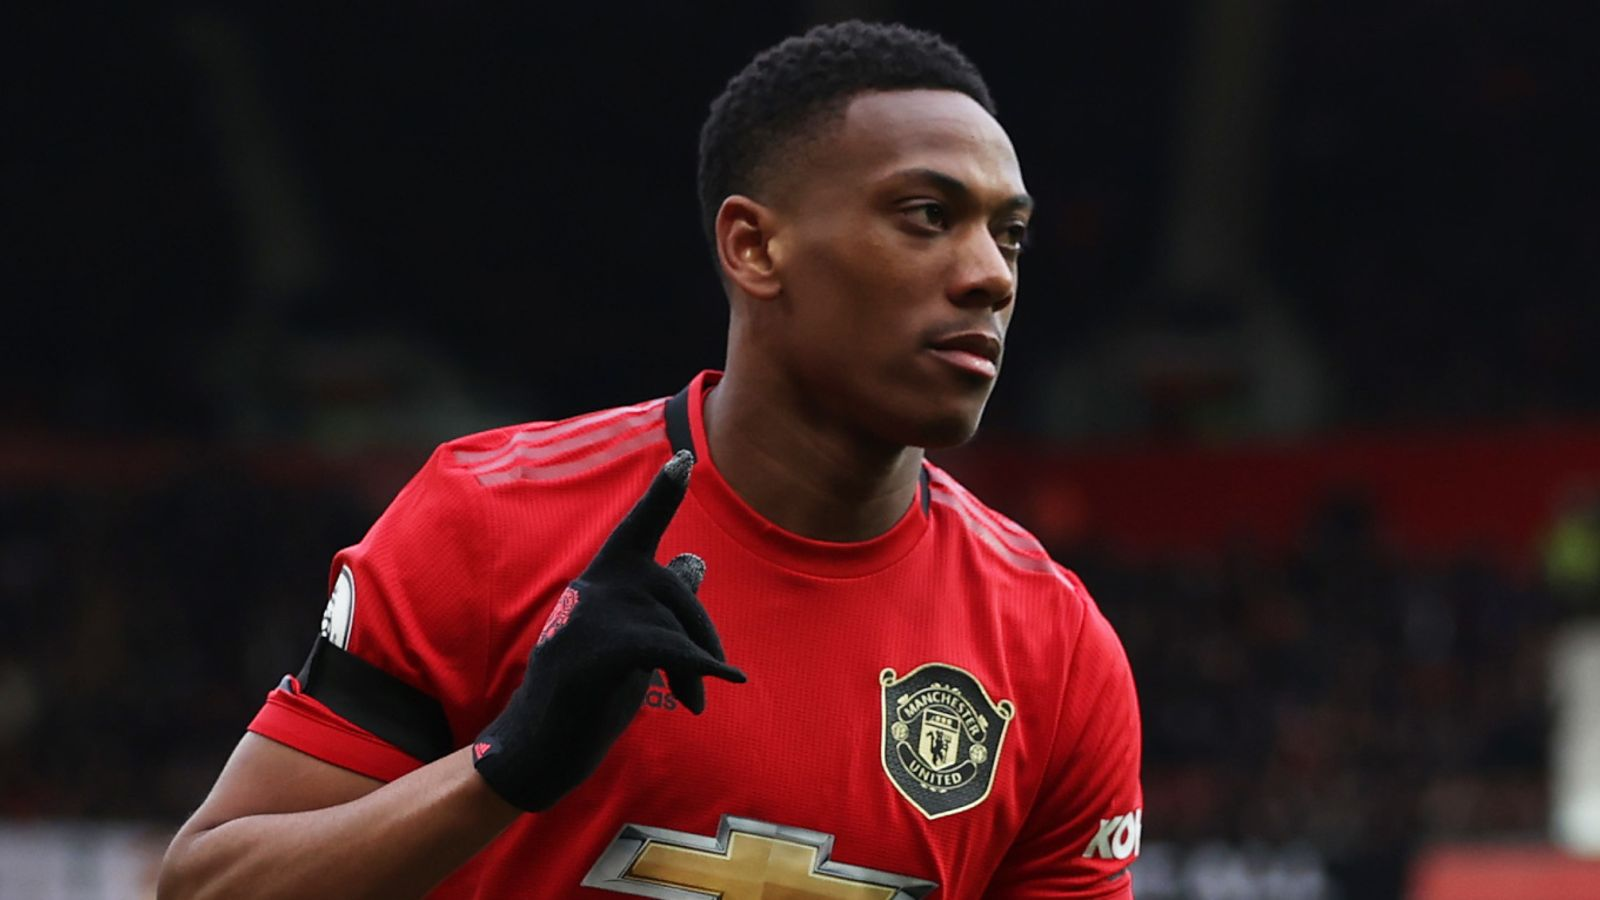 Anthony Martial: Manchester United striker misses game against Club Brugge due to muscle injury